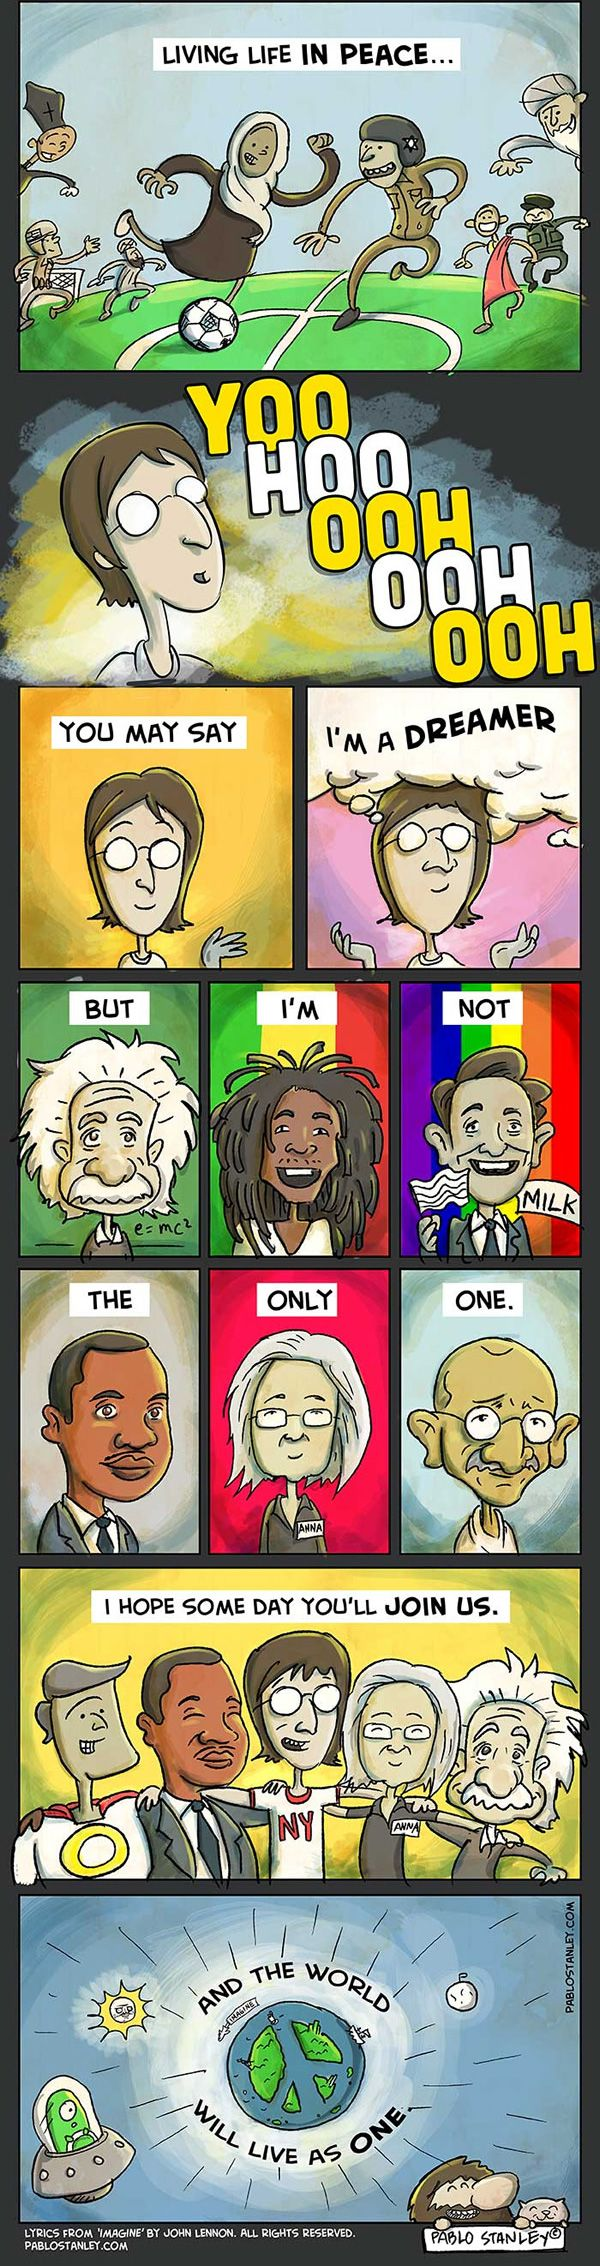 John Lennon's 'Imagine' Made Into A Comic Strip... The World Is Run By Insane People